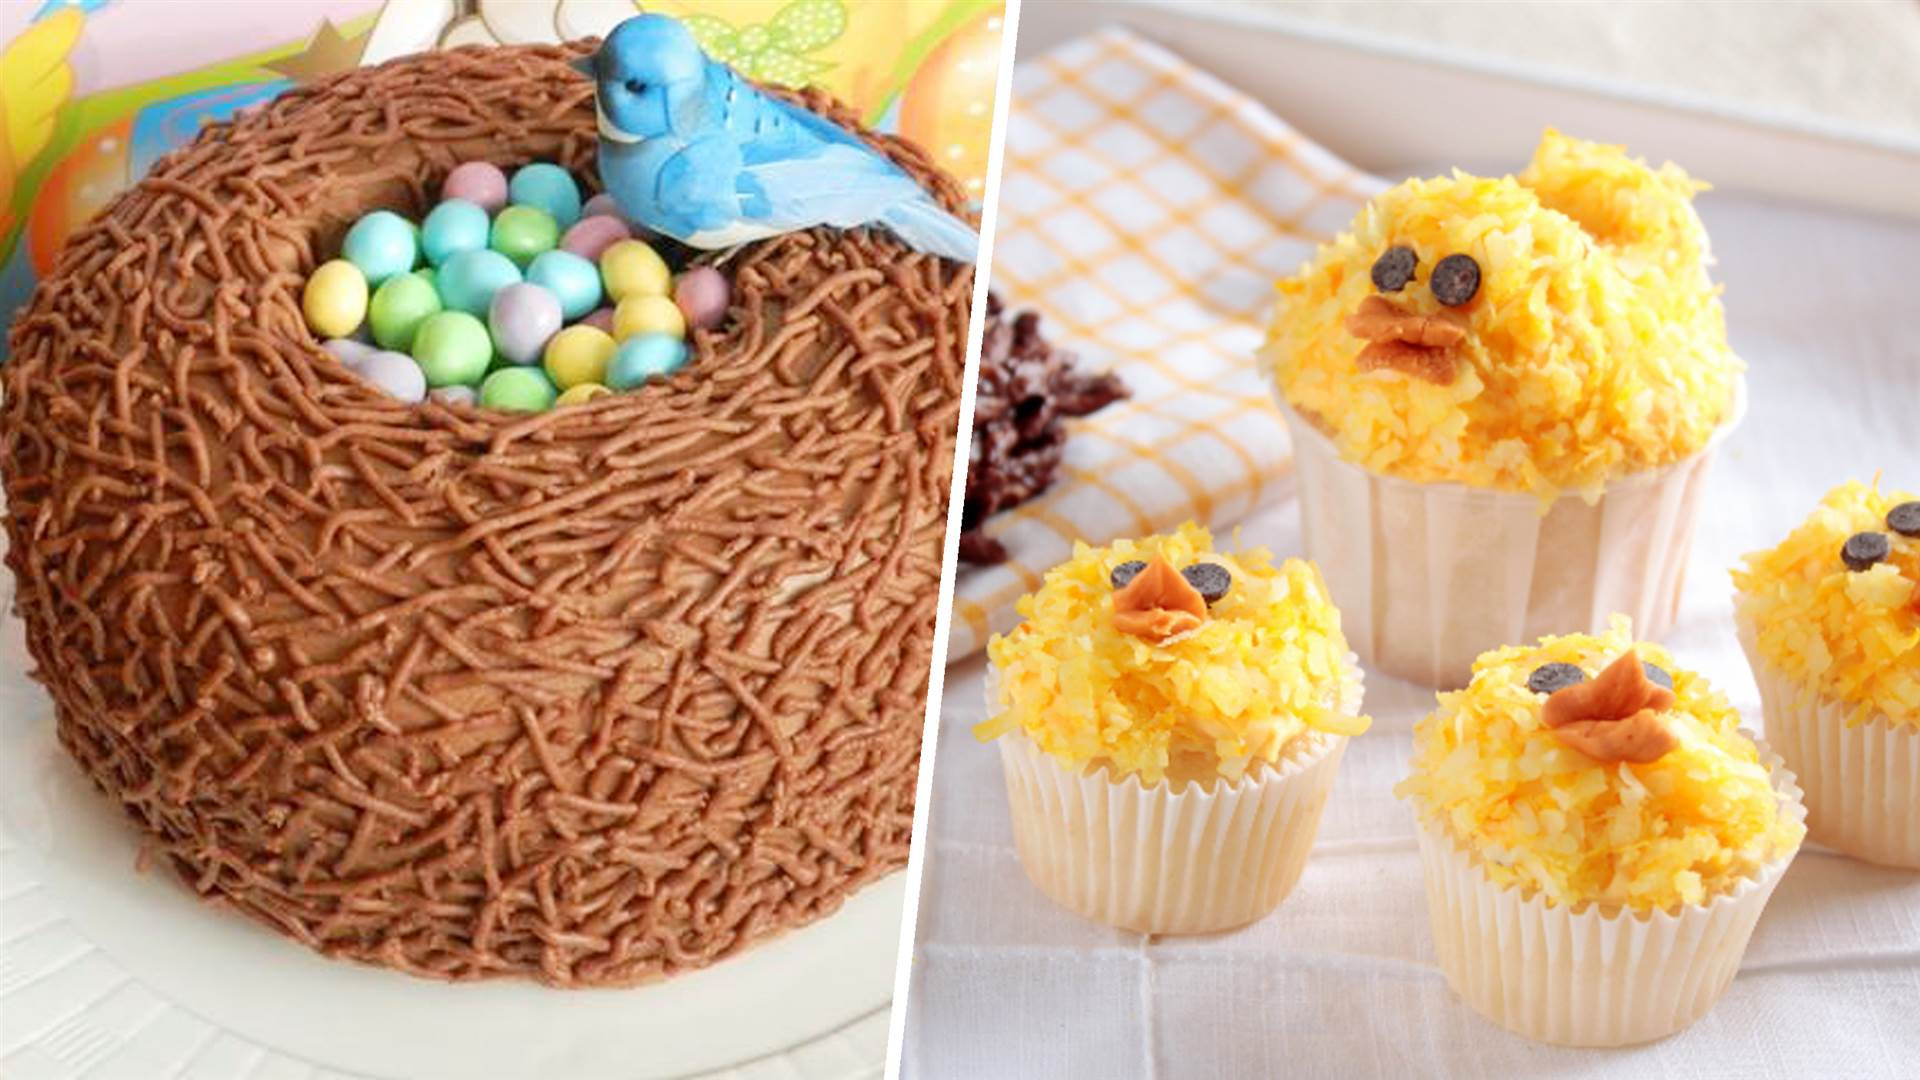 Recipe For Easter Desserts  Easter Dessert Recipes TODAY